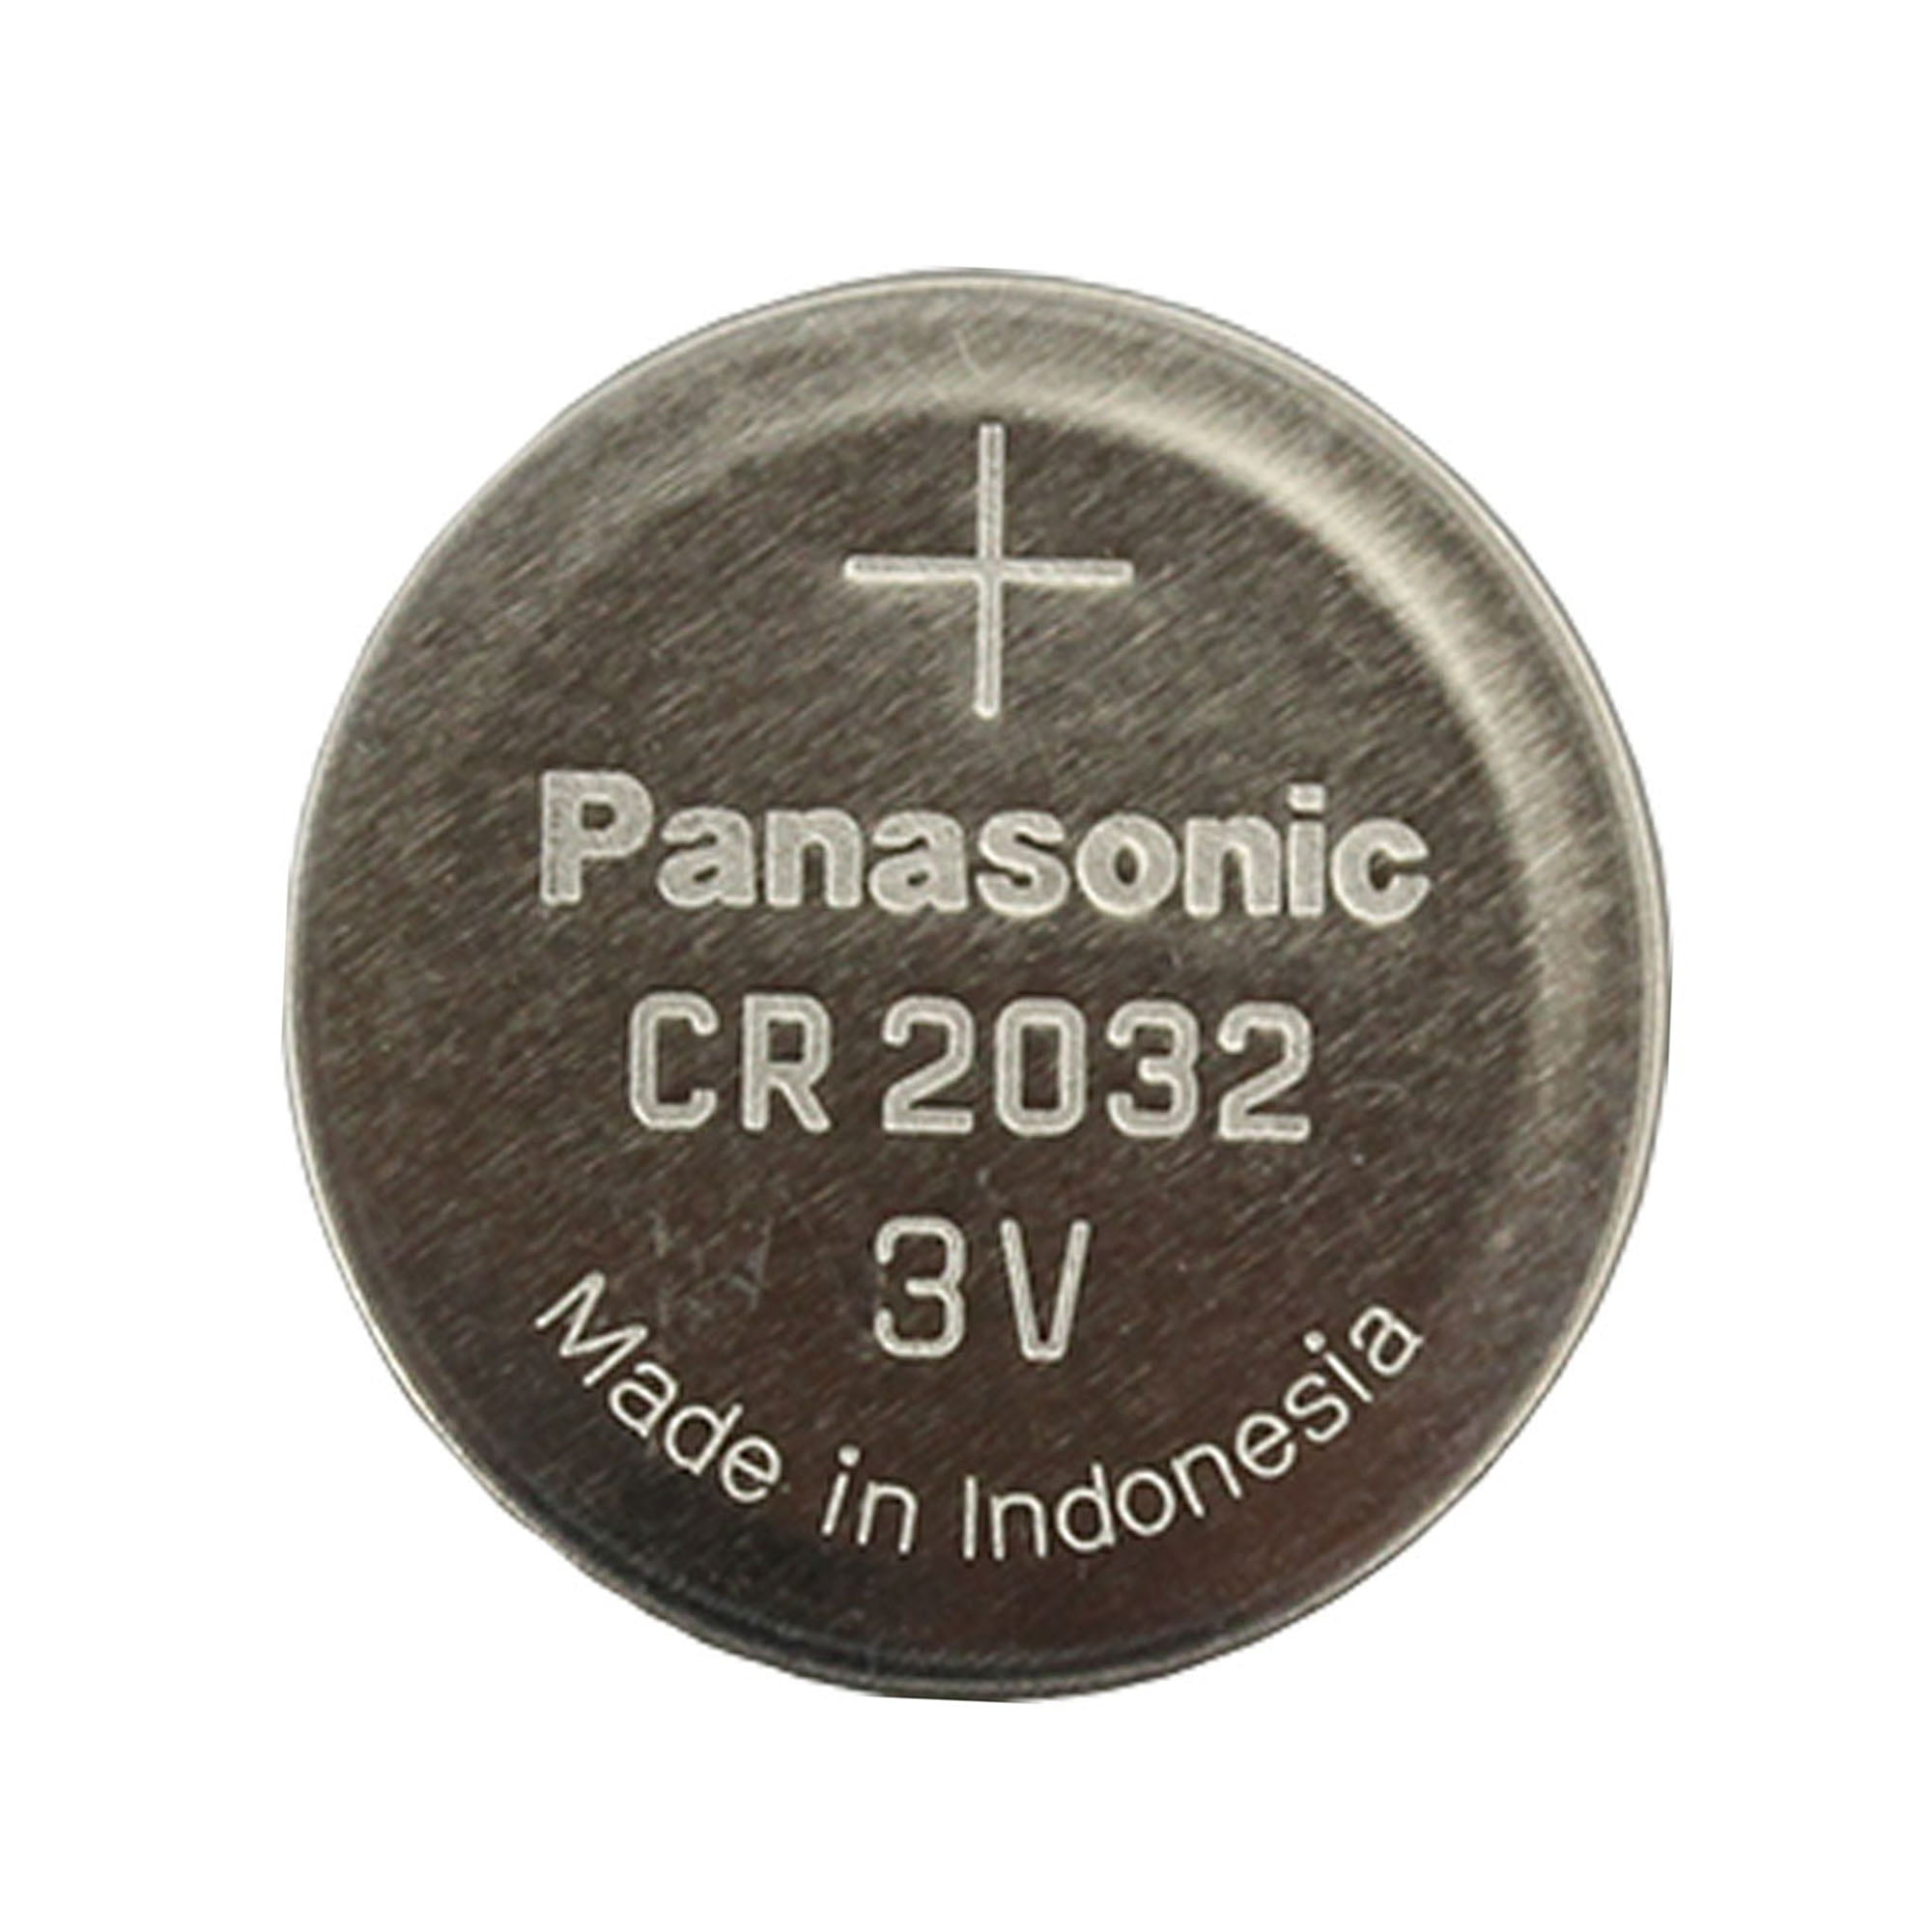 cr2032 panasonic 3 volt lithium coin cell battery. Black Bedroom Furniture Sets. Home Design Ideas